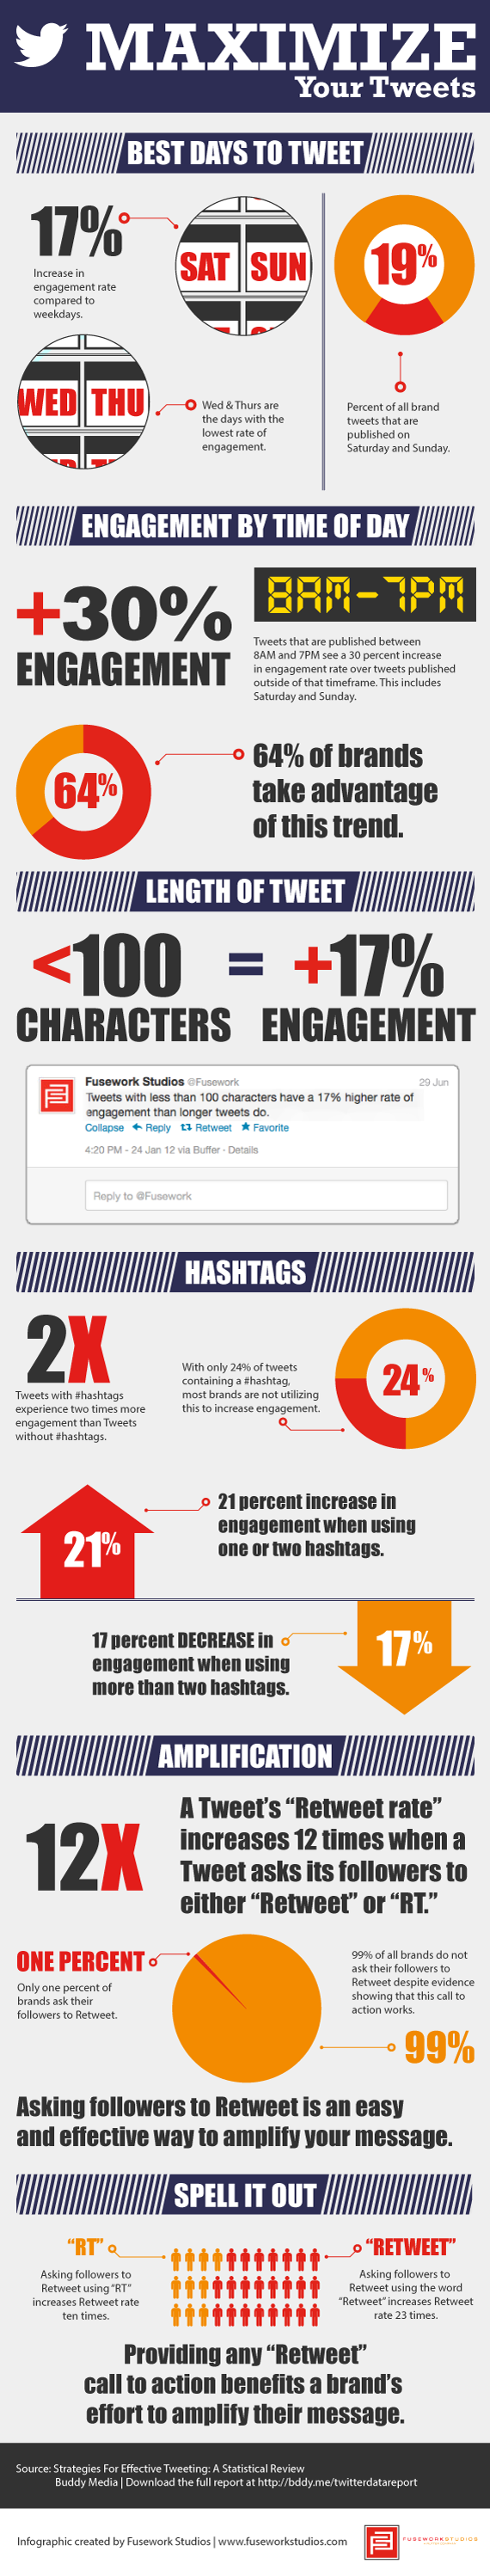 maximize your tweets1 How to Maximize Your Tweets [Infographic]